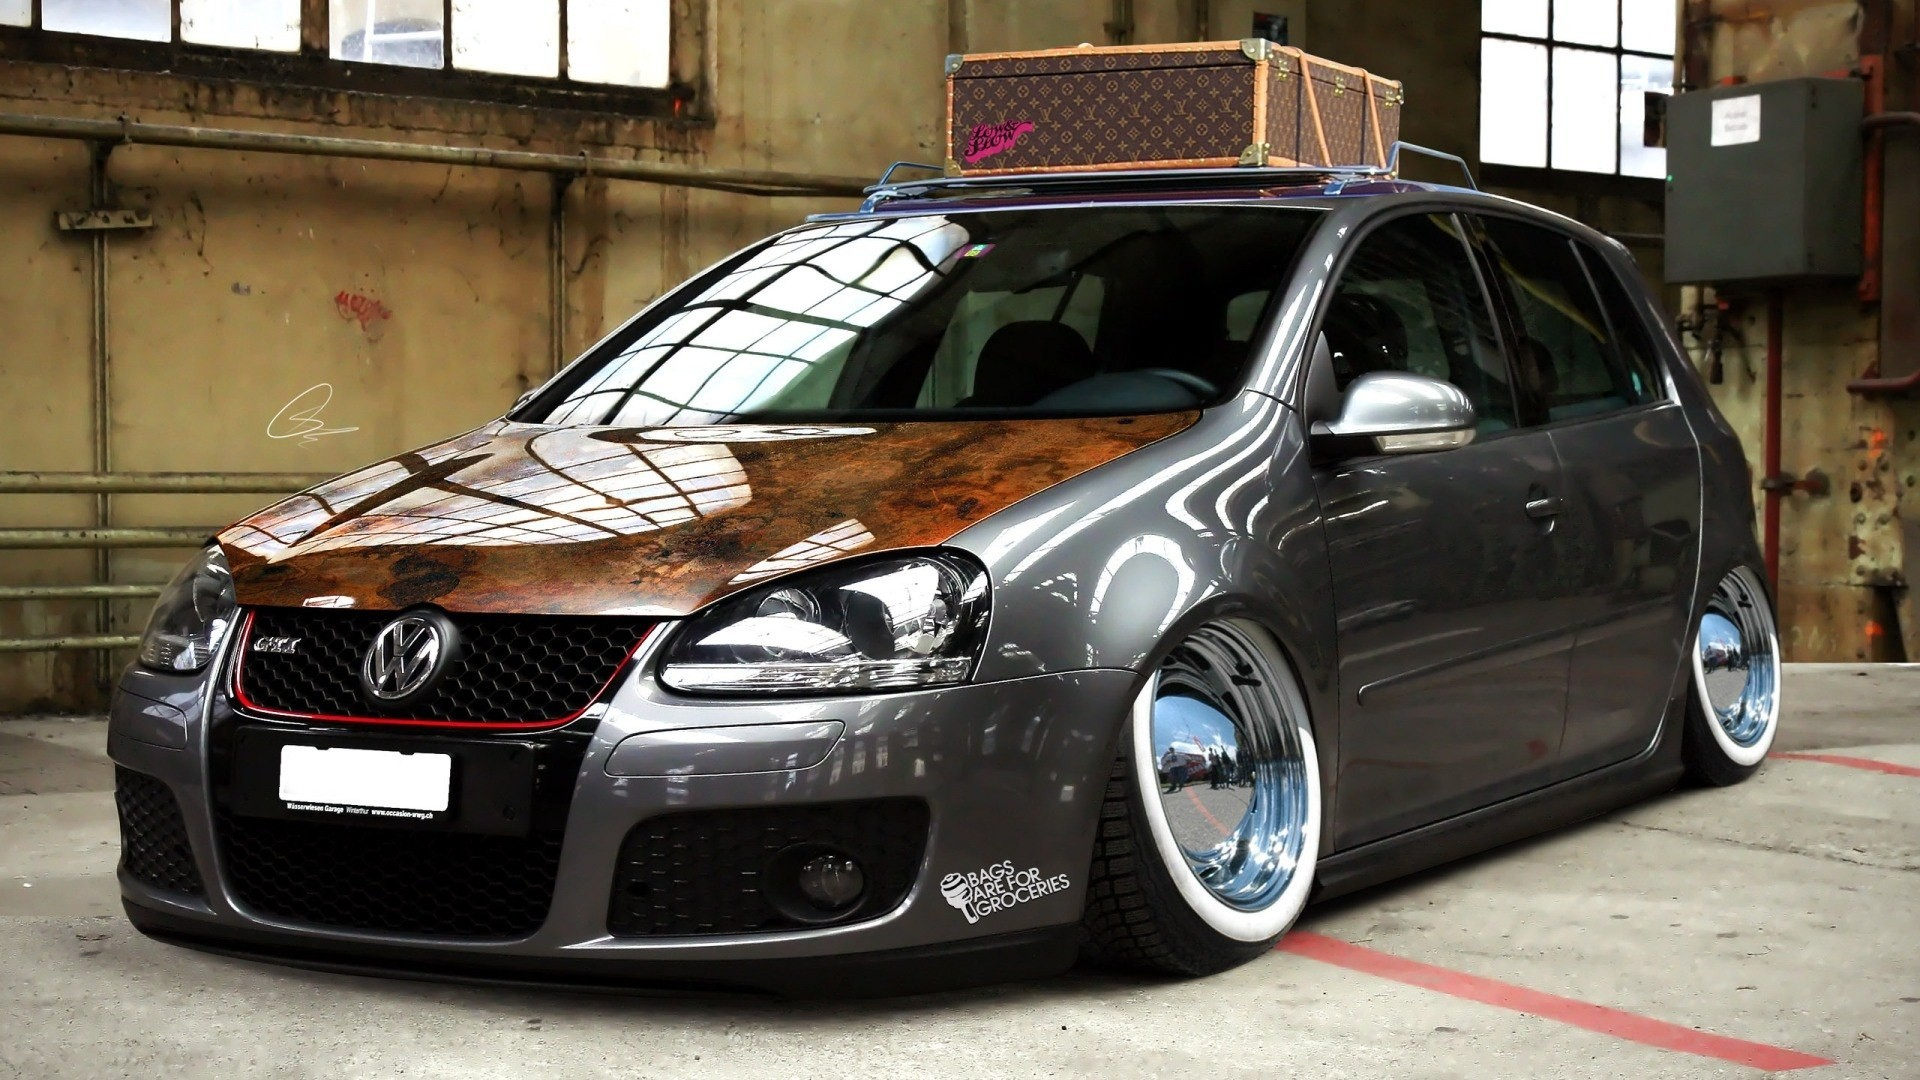 Res: 1920x1080, Volkswagen Golf GTI HD Wallpaper | Background Image |  | ID:350547  - Wallpaper Abyss